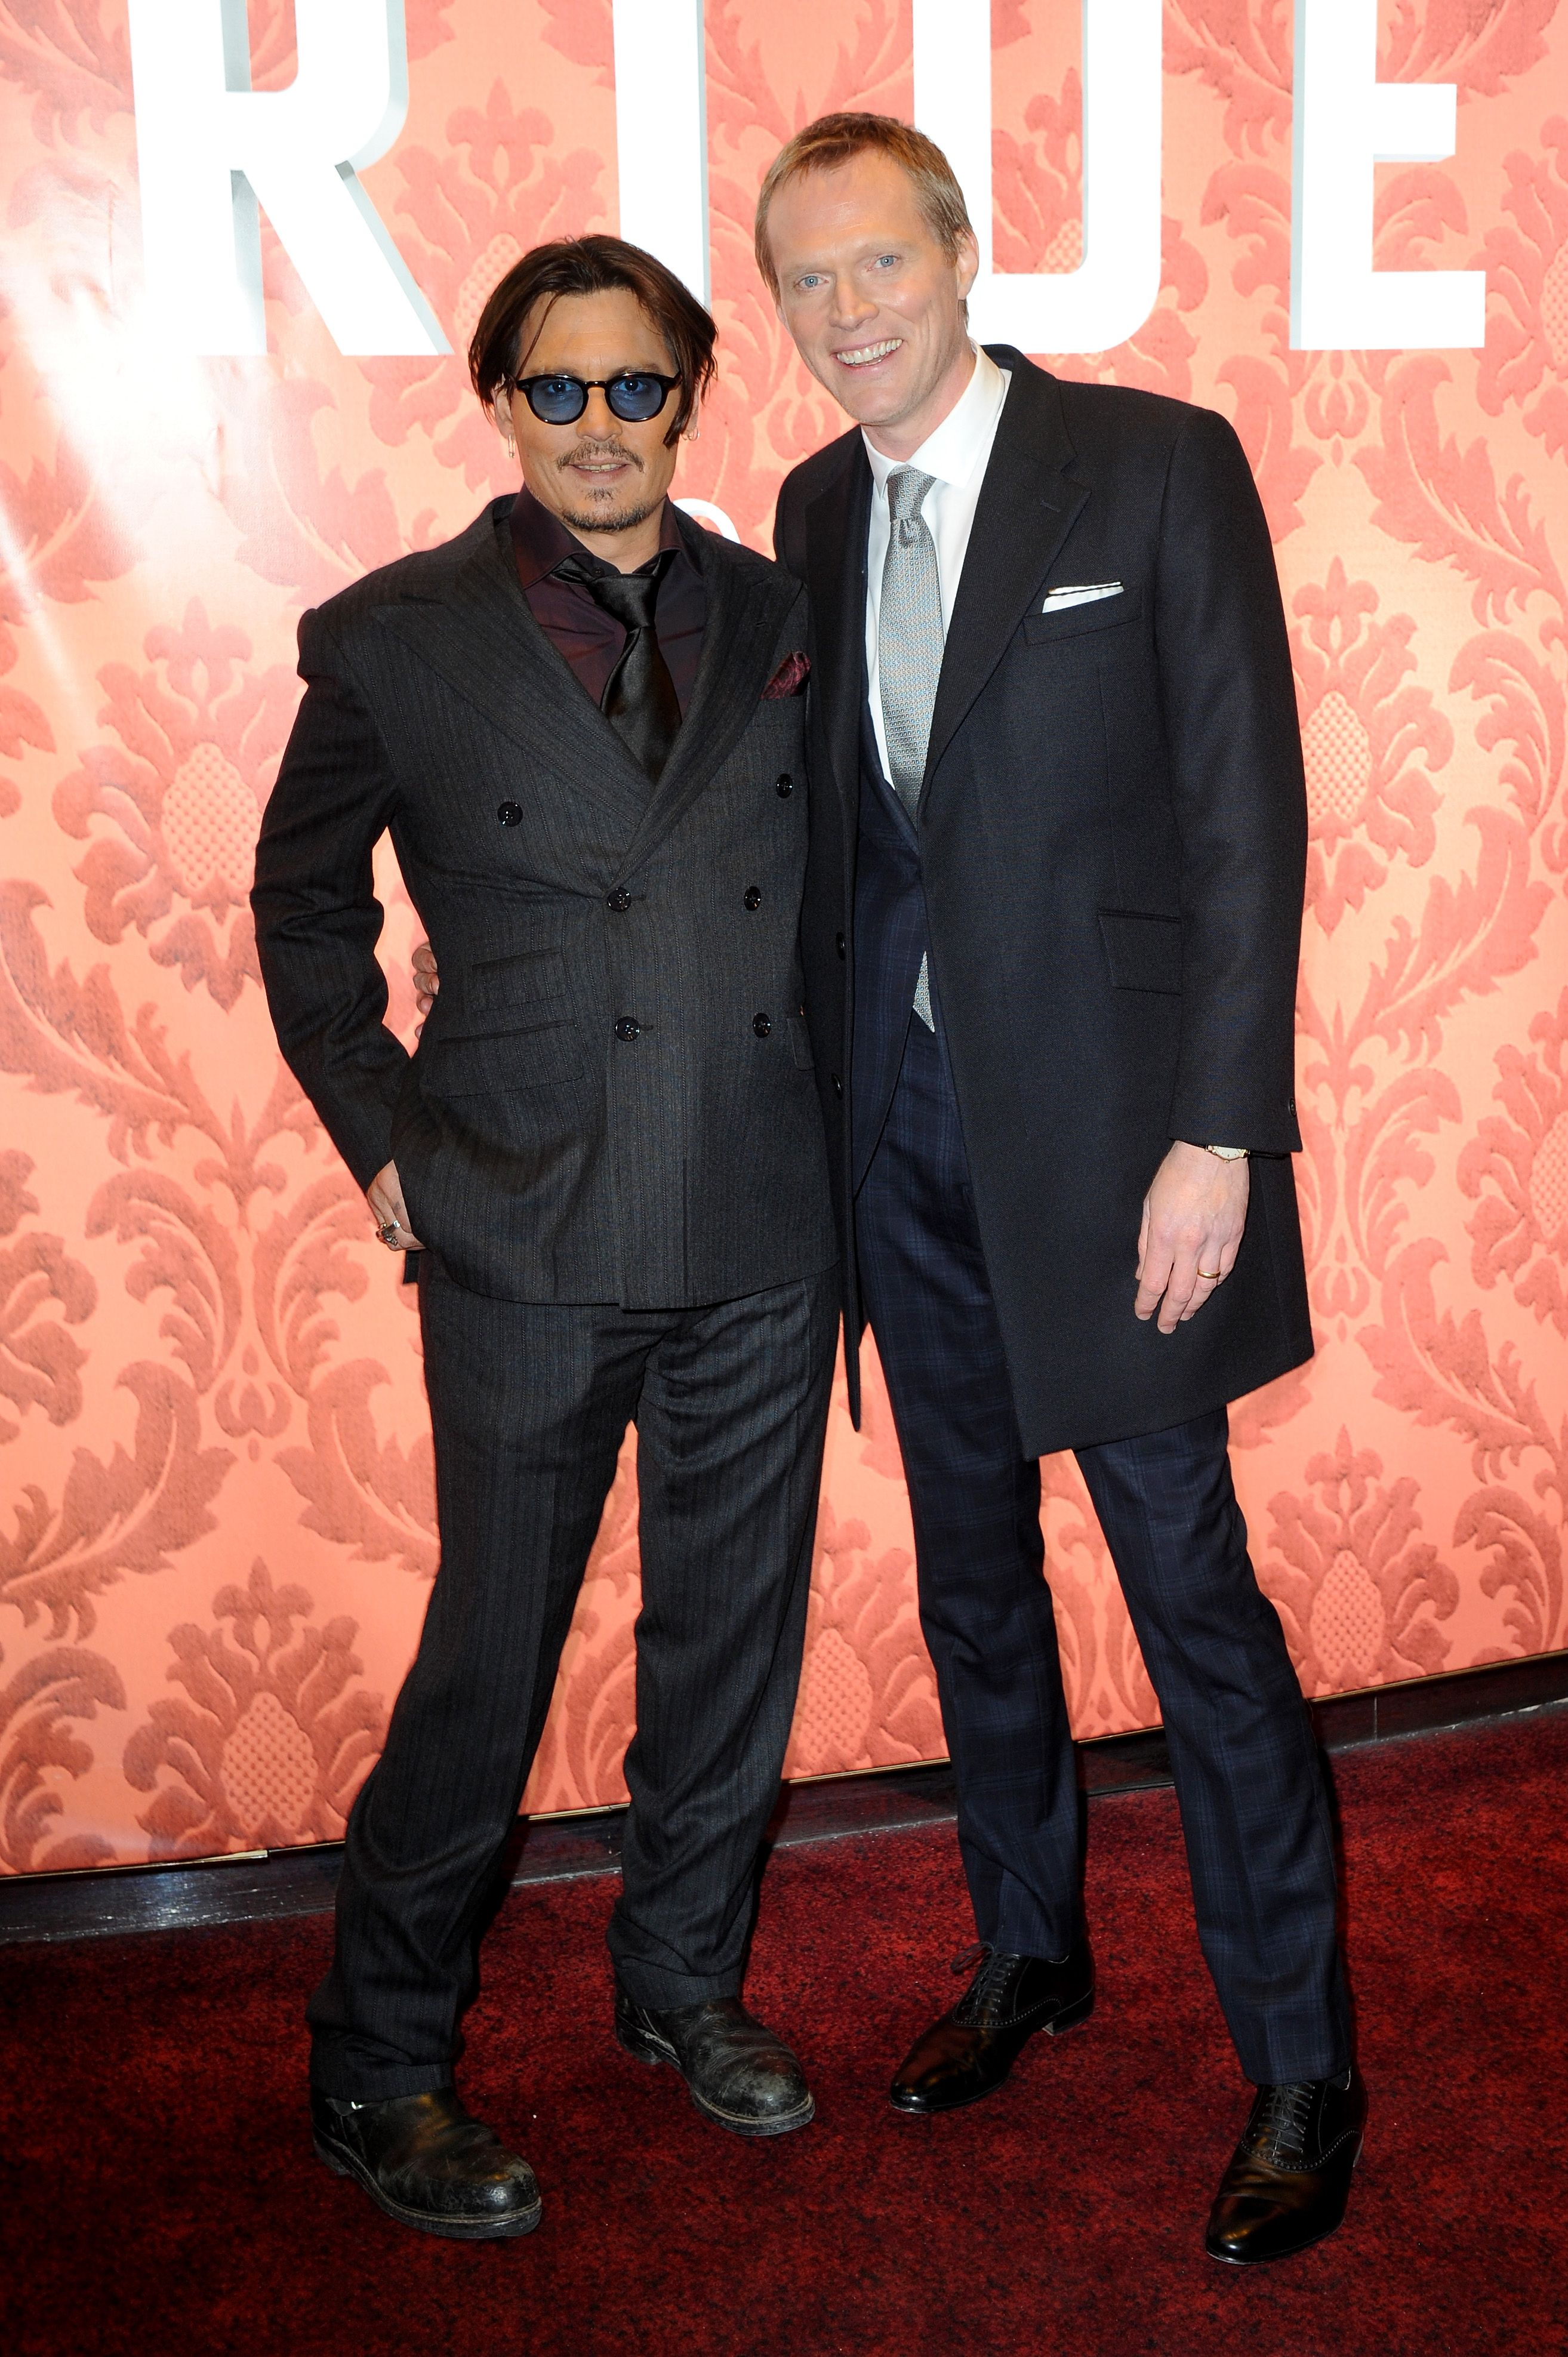 6 Moments That Just Made Johnny Depp And Paul Bettany Our New Favorite Comedy Duo Johnny Depp Johnny Johnny Depp Movies